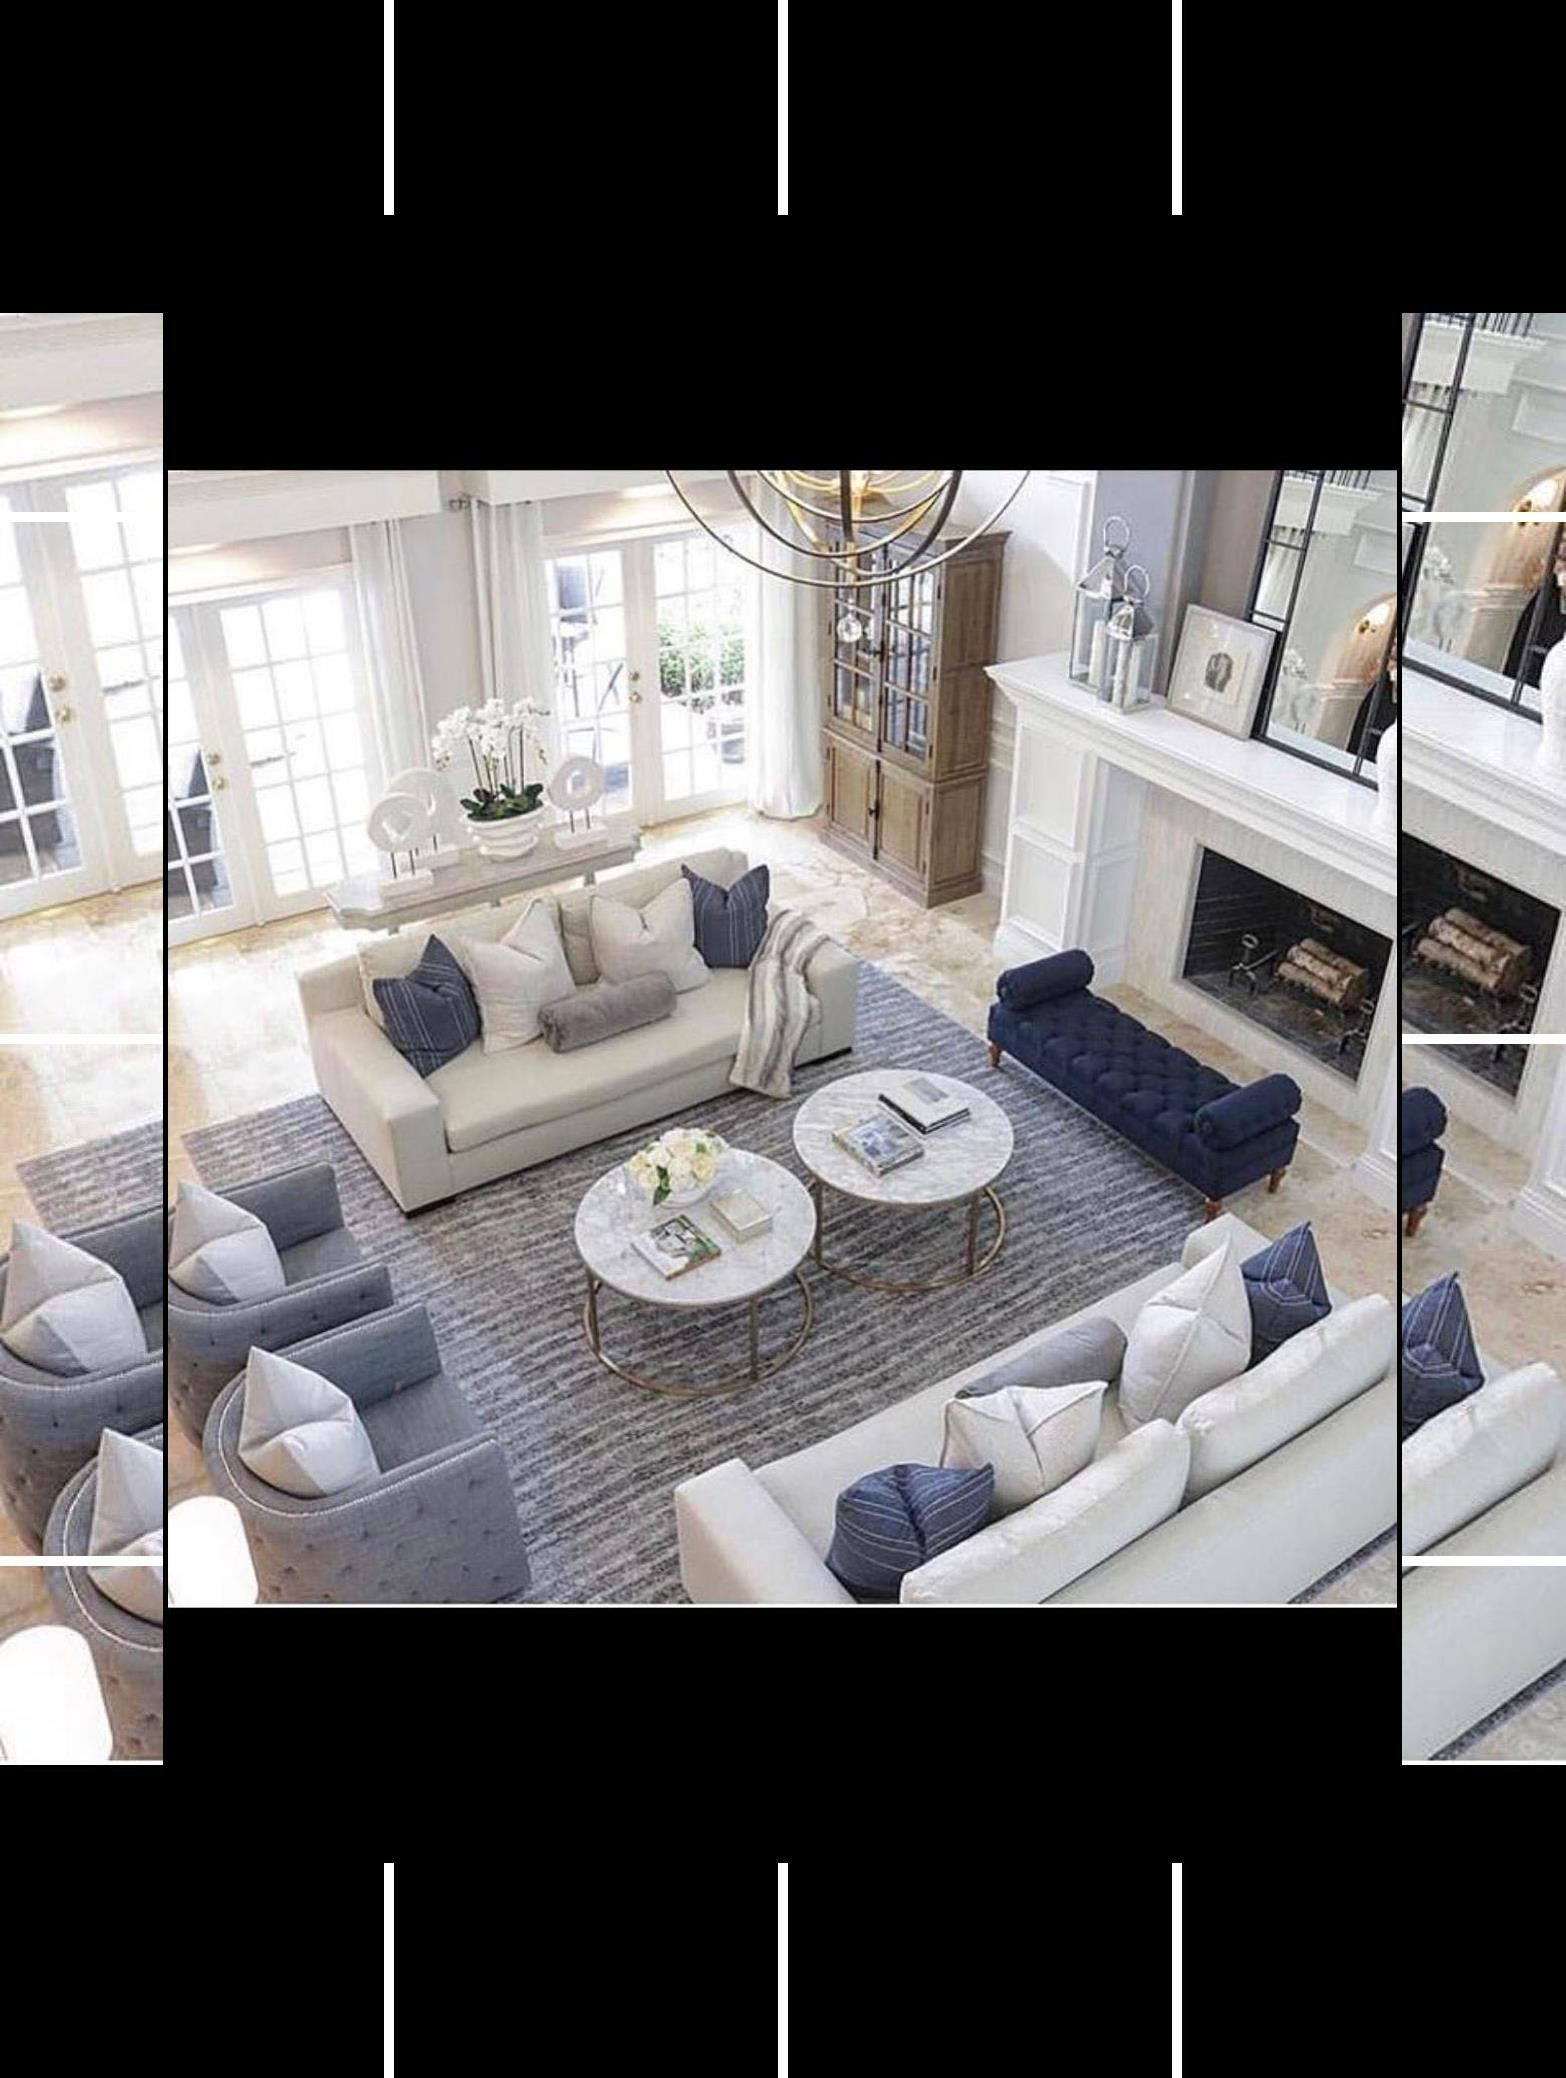 Design My Living Room Online: Small Front Room Ideas